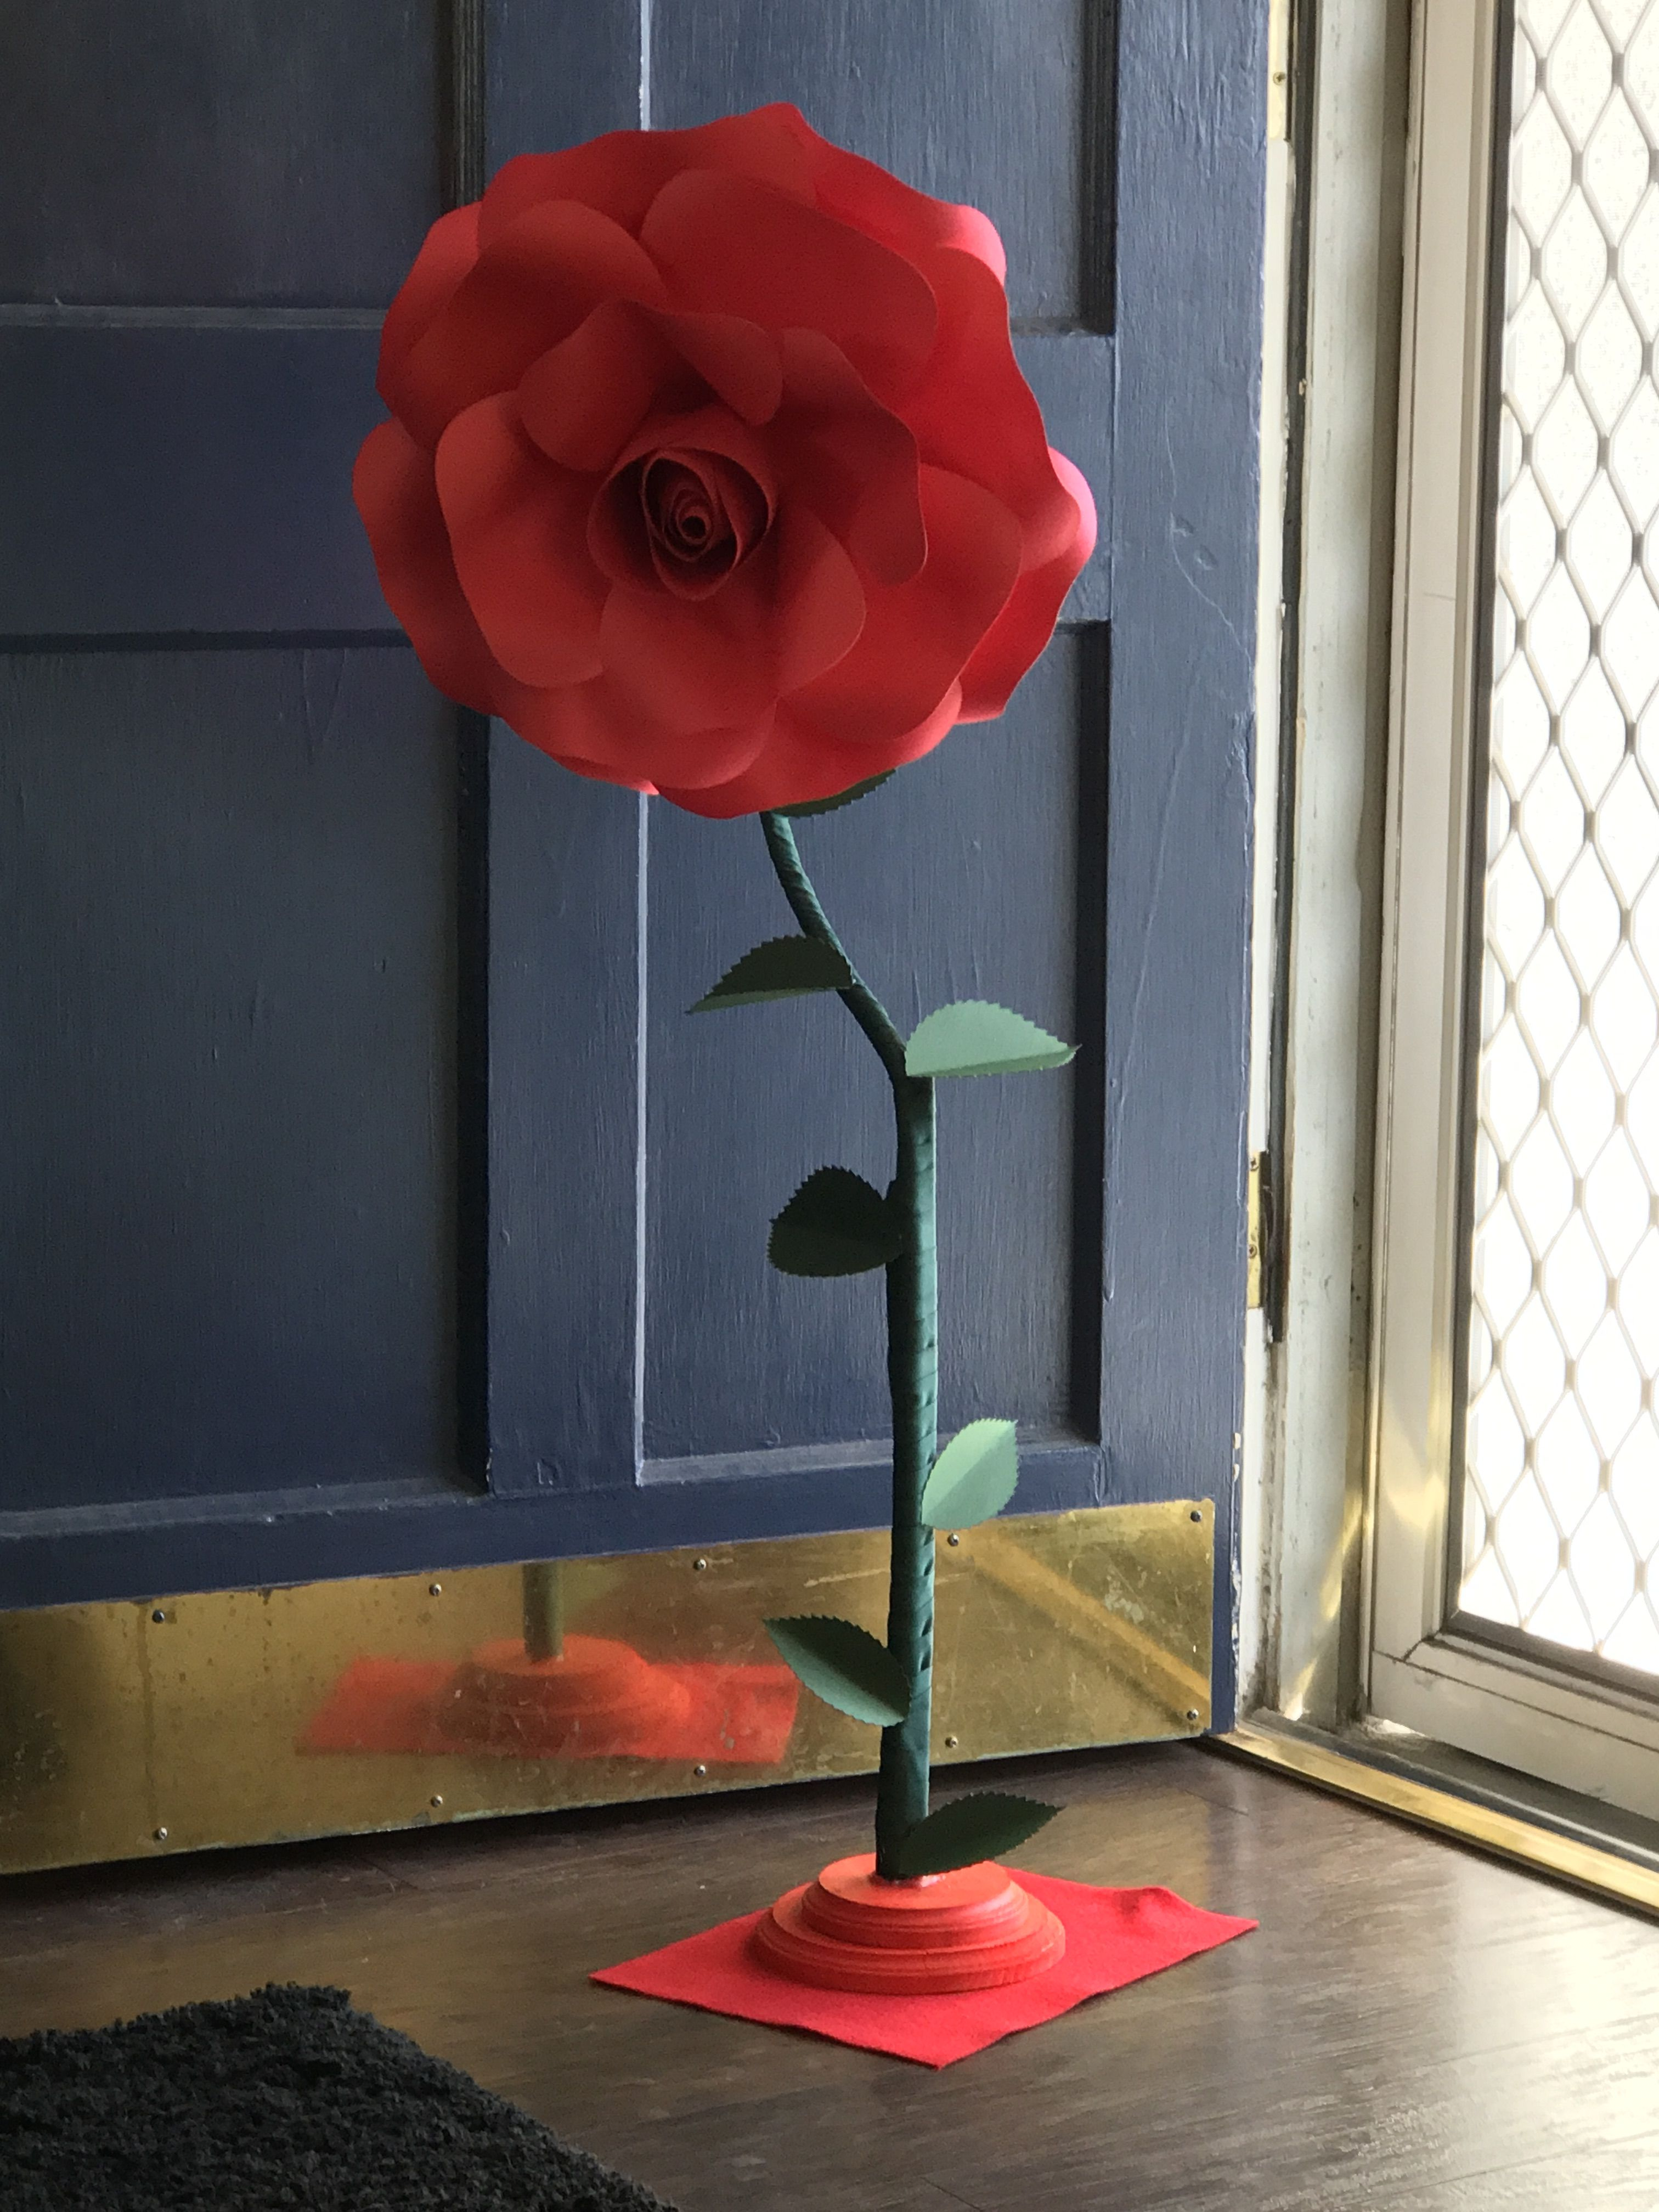 Giant Free Standing Red Paper Rose Giant Paper Flowers Paper Flowers Diy Red Rose Paper Flower Wall Paper Paper Flower Wall Paper Roses Paper Flowers Diy